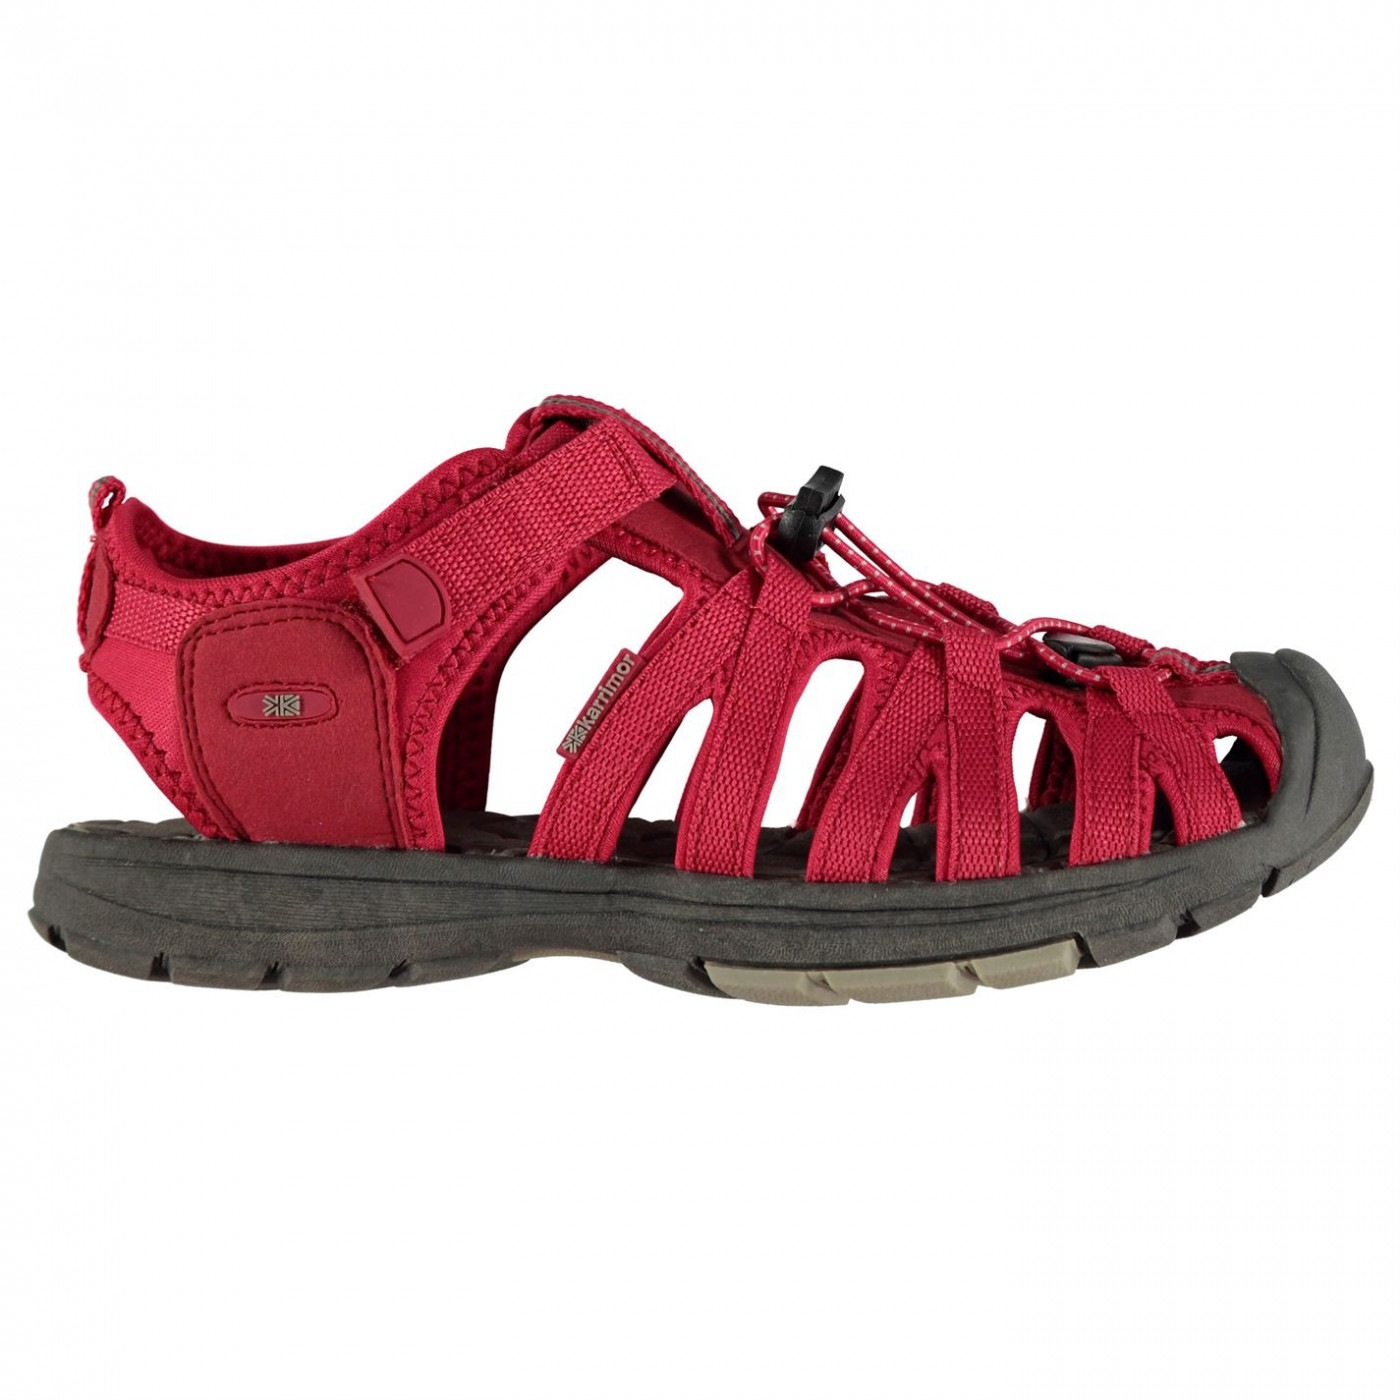 Kids' sandals Karrimor Ithaca